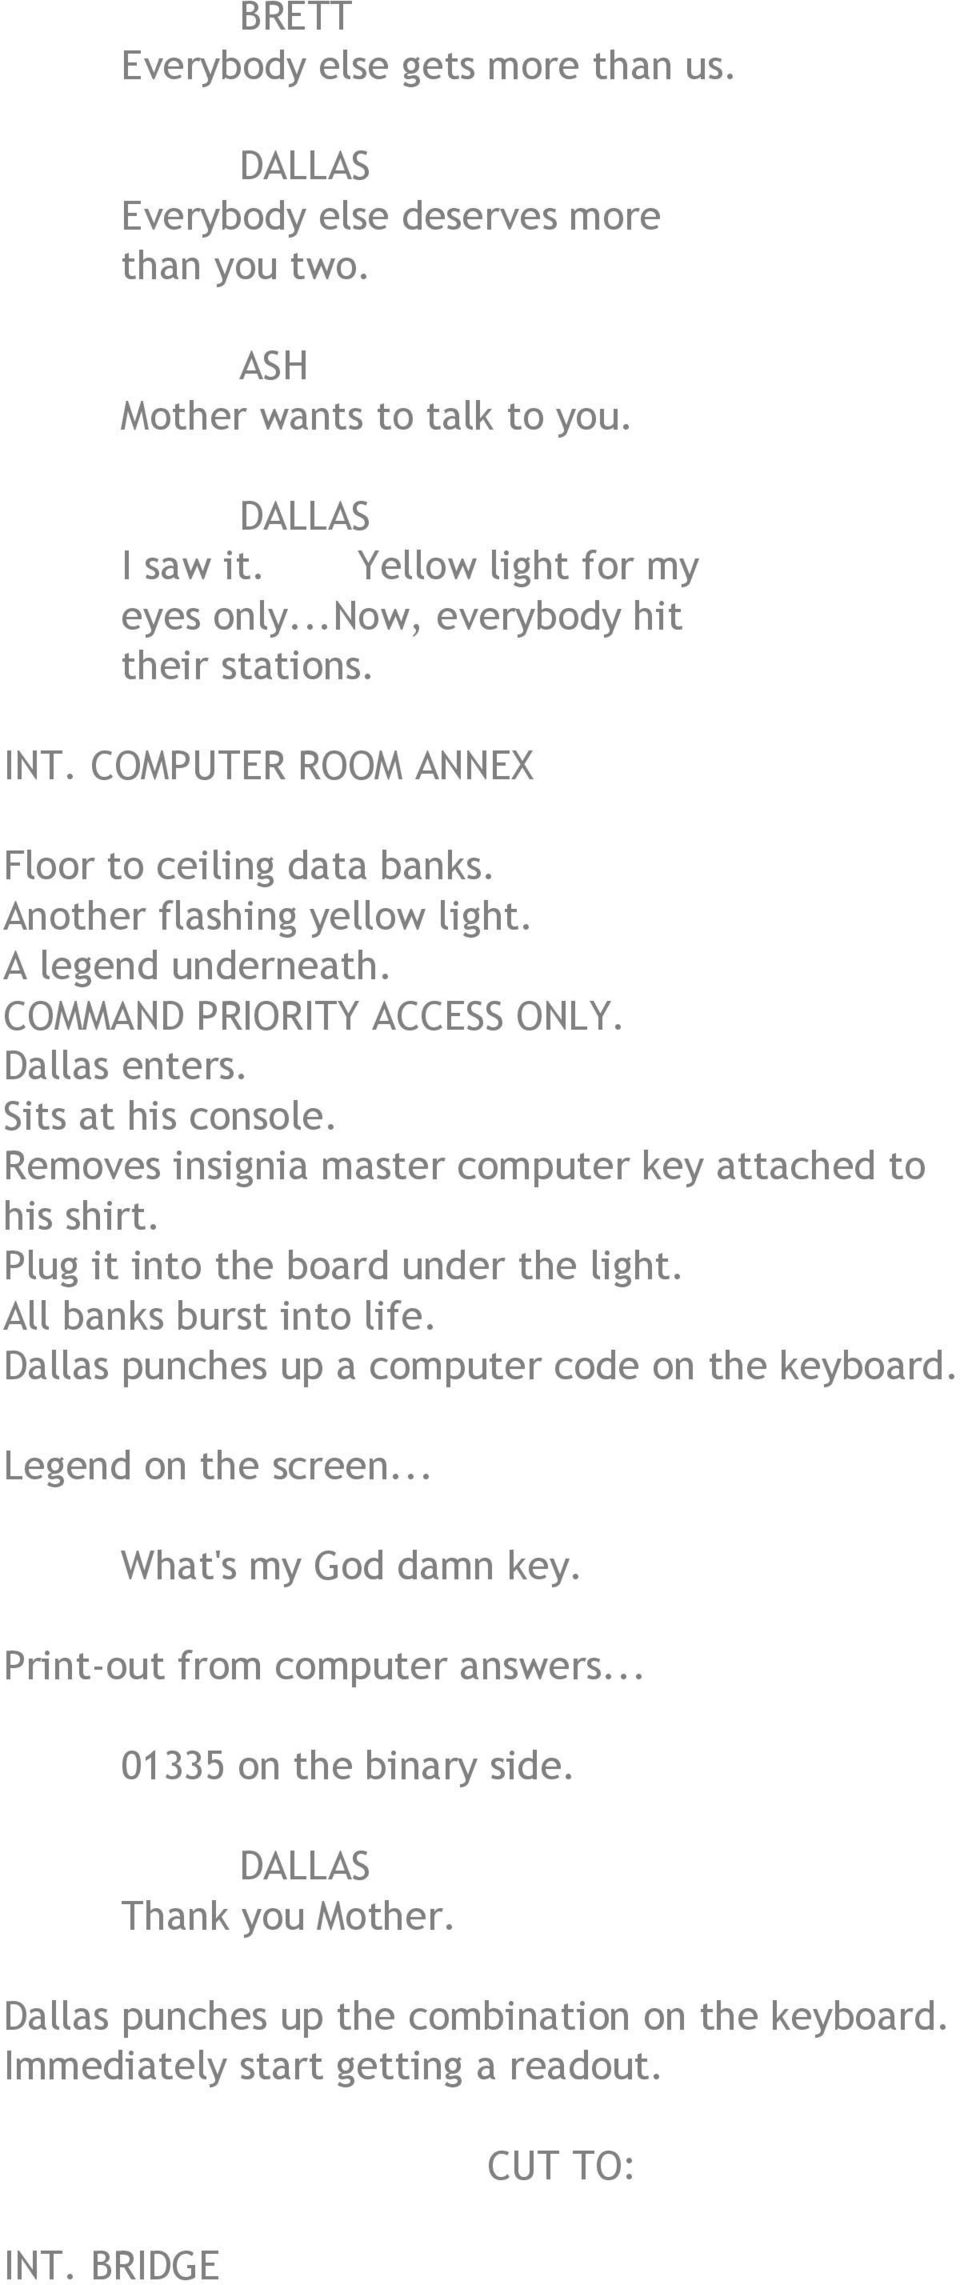 Removes insignia master computer key attached to his shirt. Plug it into the board under the light. All banks burst into life. Dallas punches up a computer code on the keyboard.